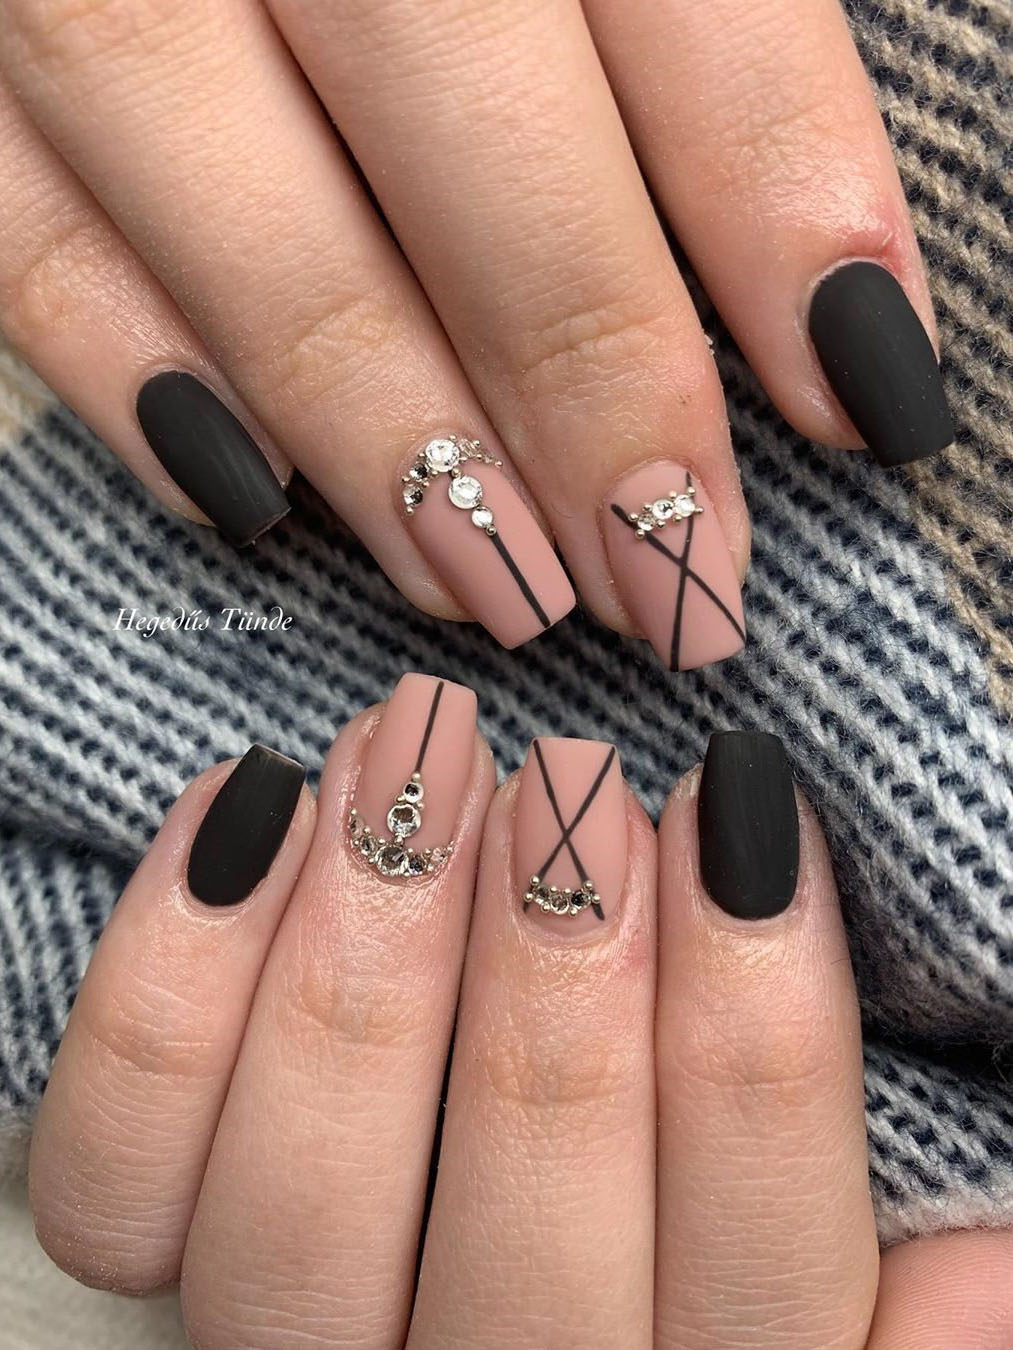 Simple black nails designs it match with glitter stick or dip powder, looks so edgy and stylish! It make you in perfect in all years. Say hello to these 40 black nails ideas! | flymeso.com